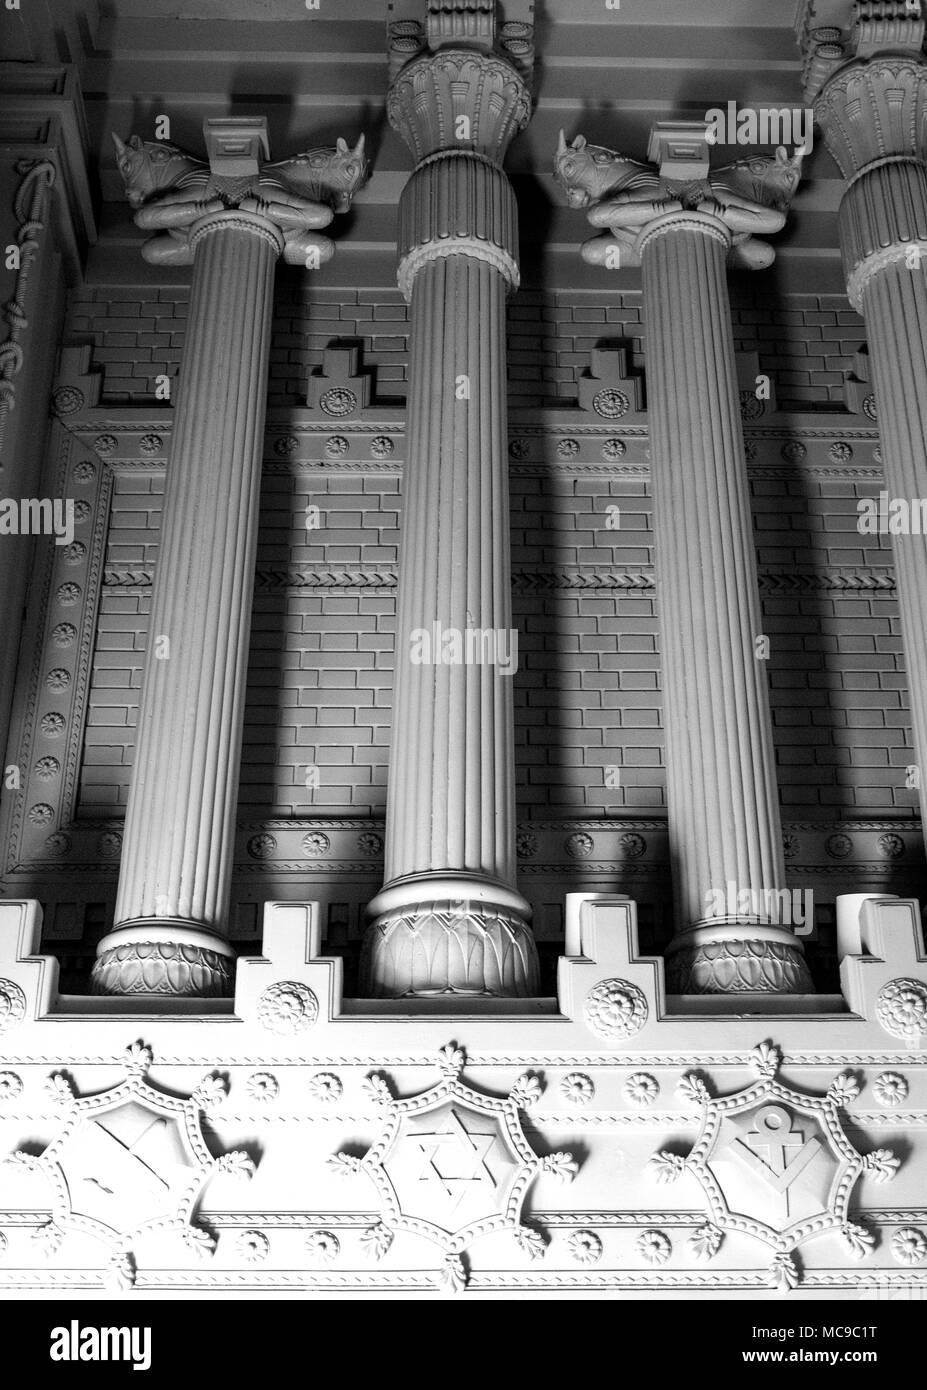 Interior detail of abandoned Masonic Temple at the Hotel